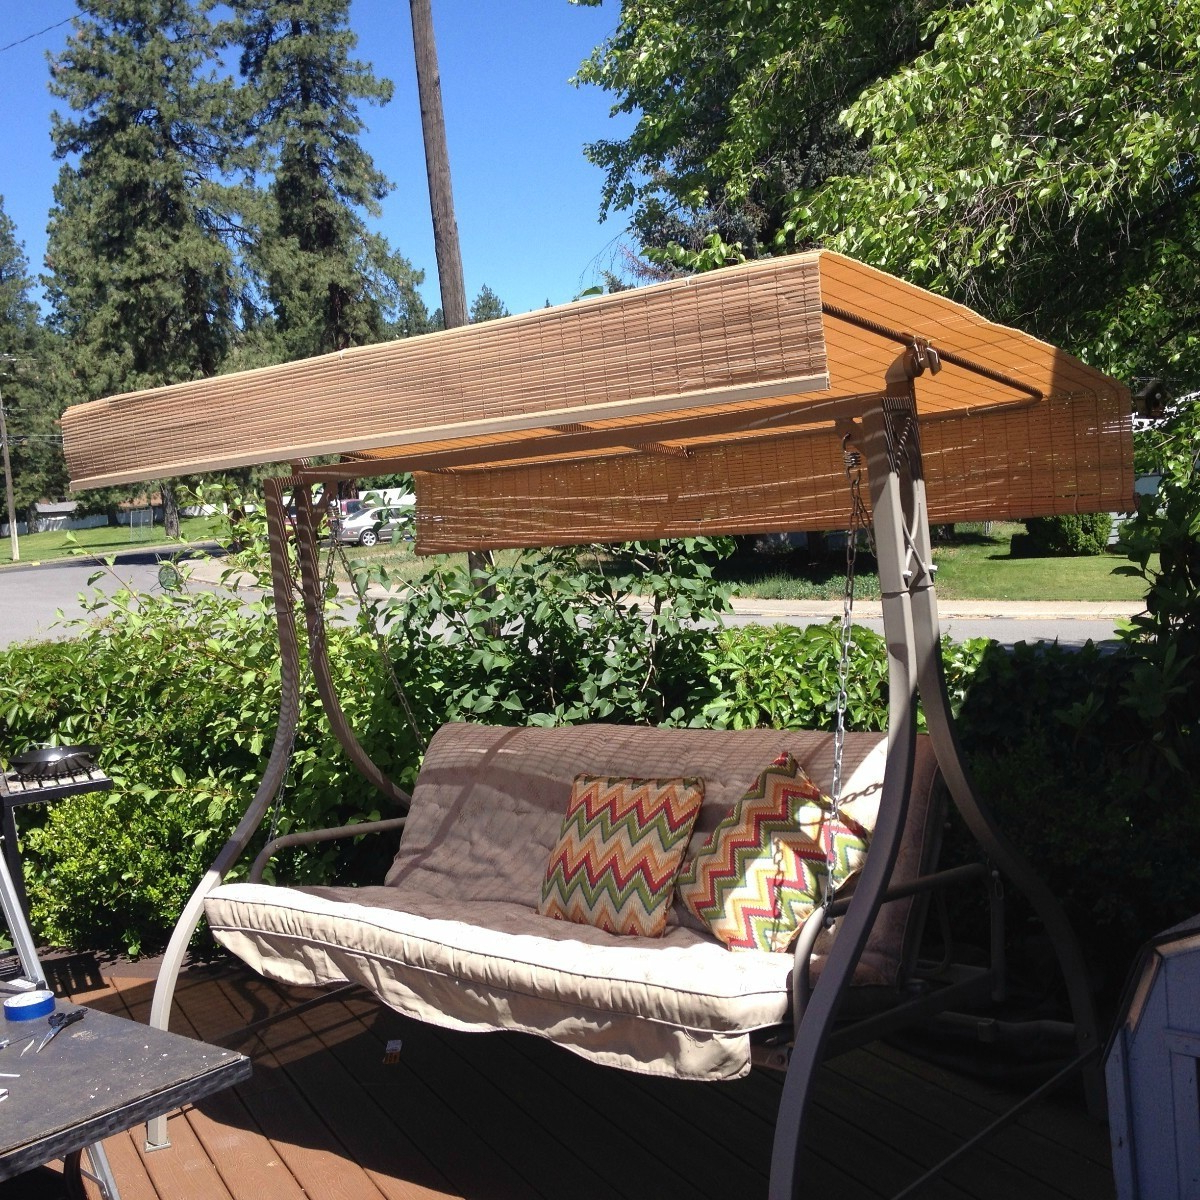 Replacing The Canopy On A Patio Swing (View 30 of 30)